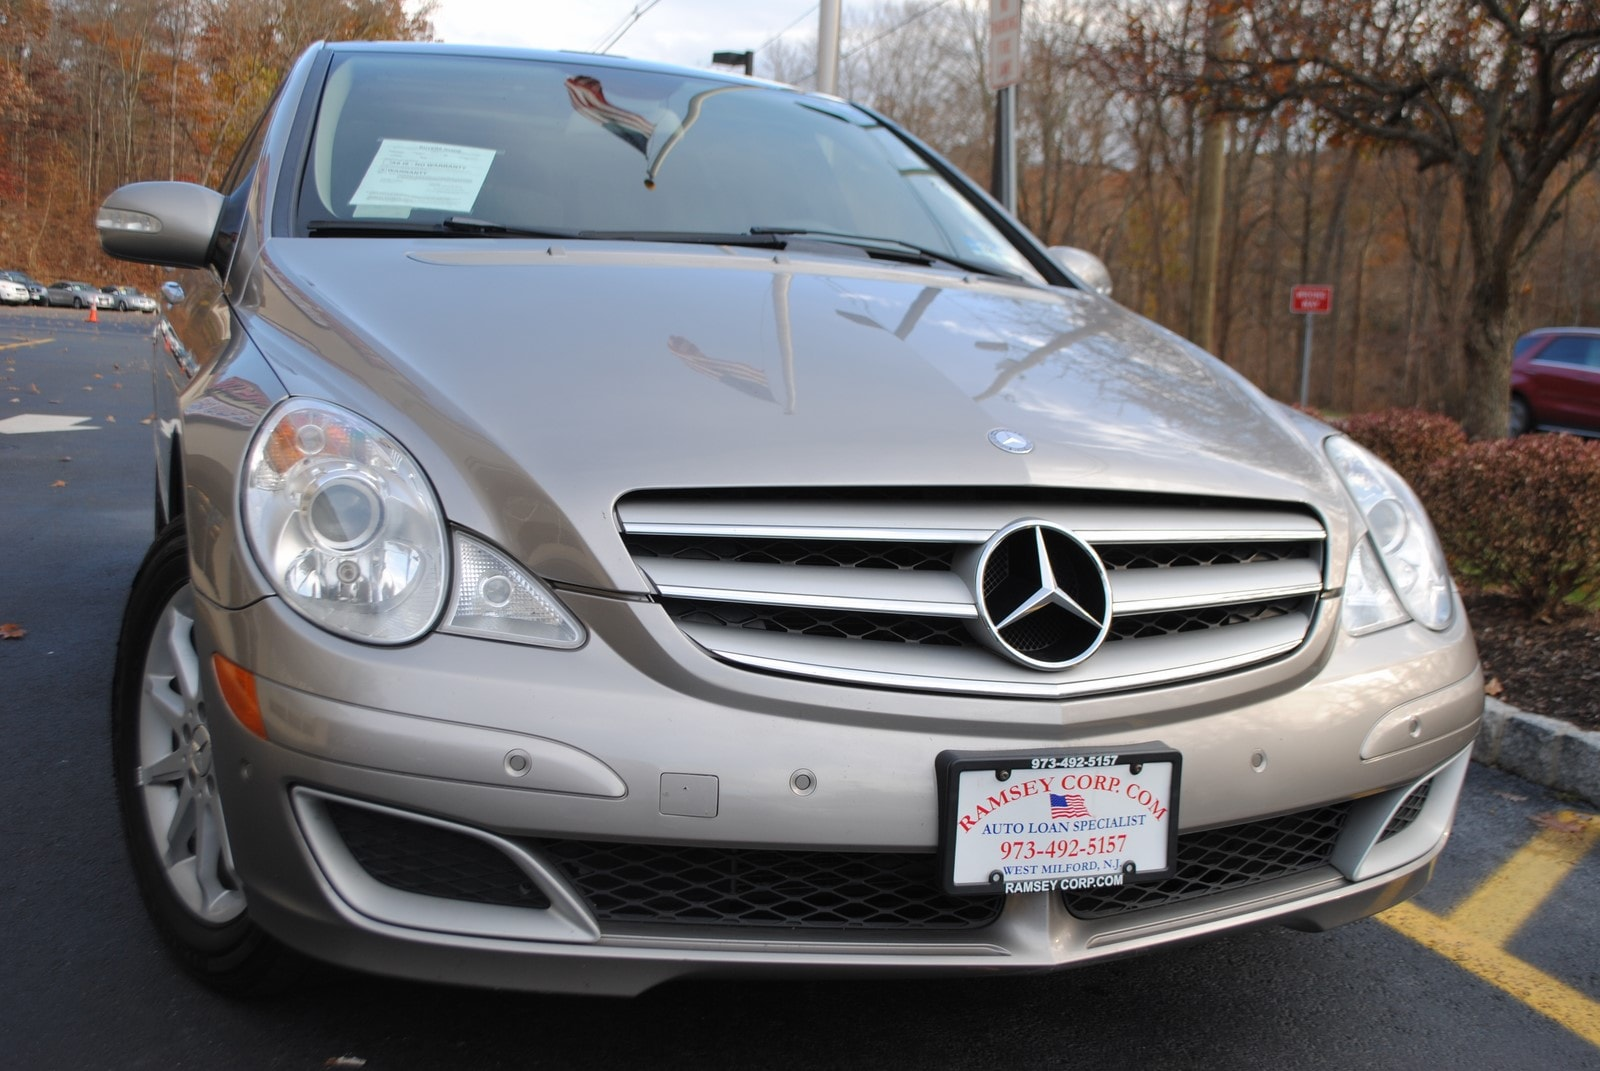 used 2007 mercedes benz r class for sale west milford nj rh ramseycorp com Green 2007 Mercedes R350 2007 R 350 Mercedes with Chrome Rims